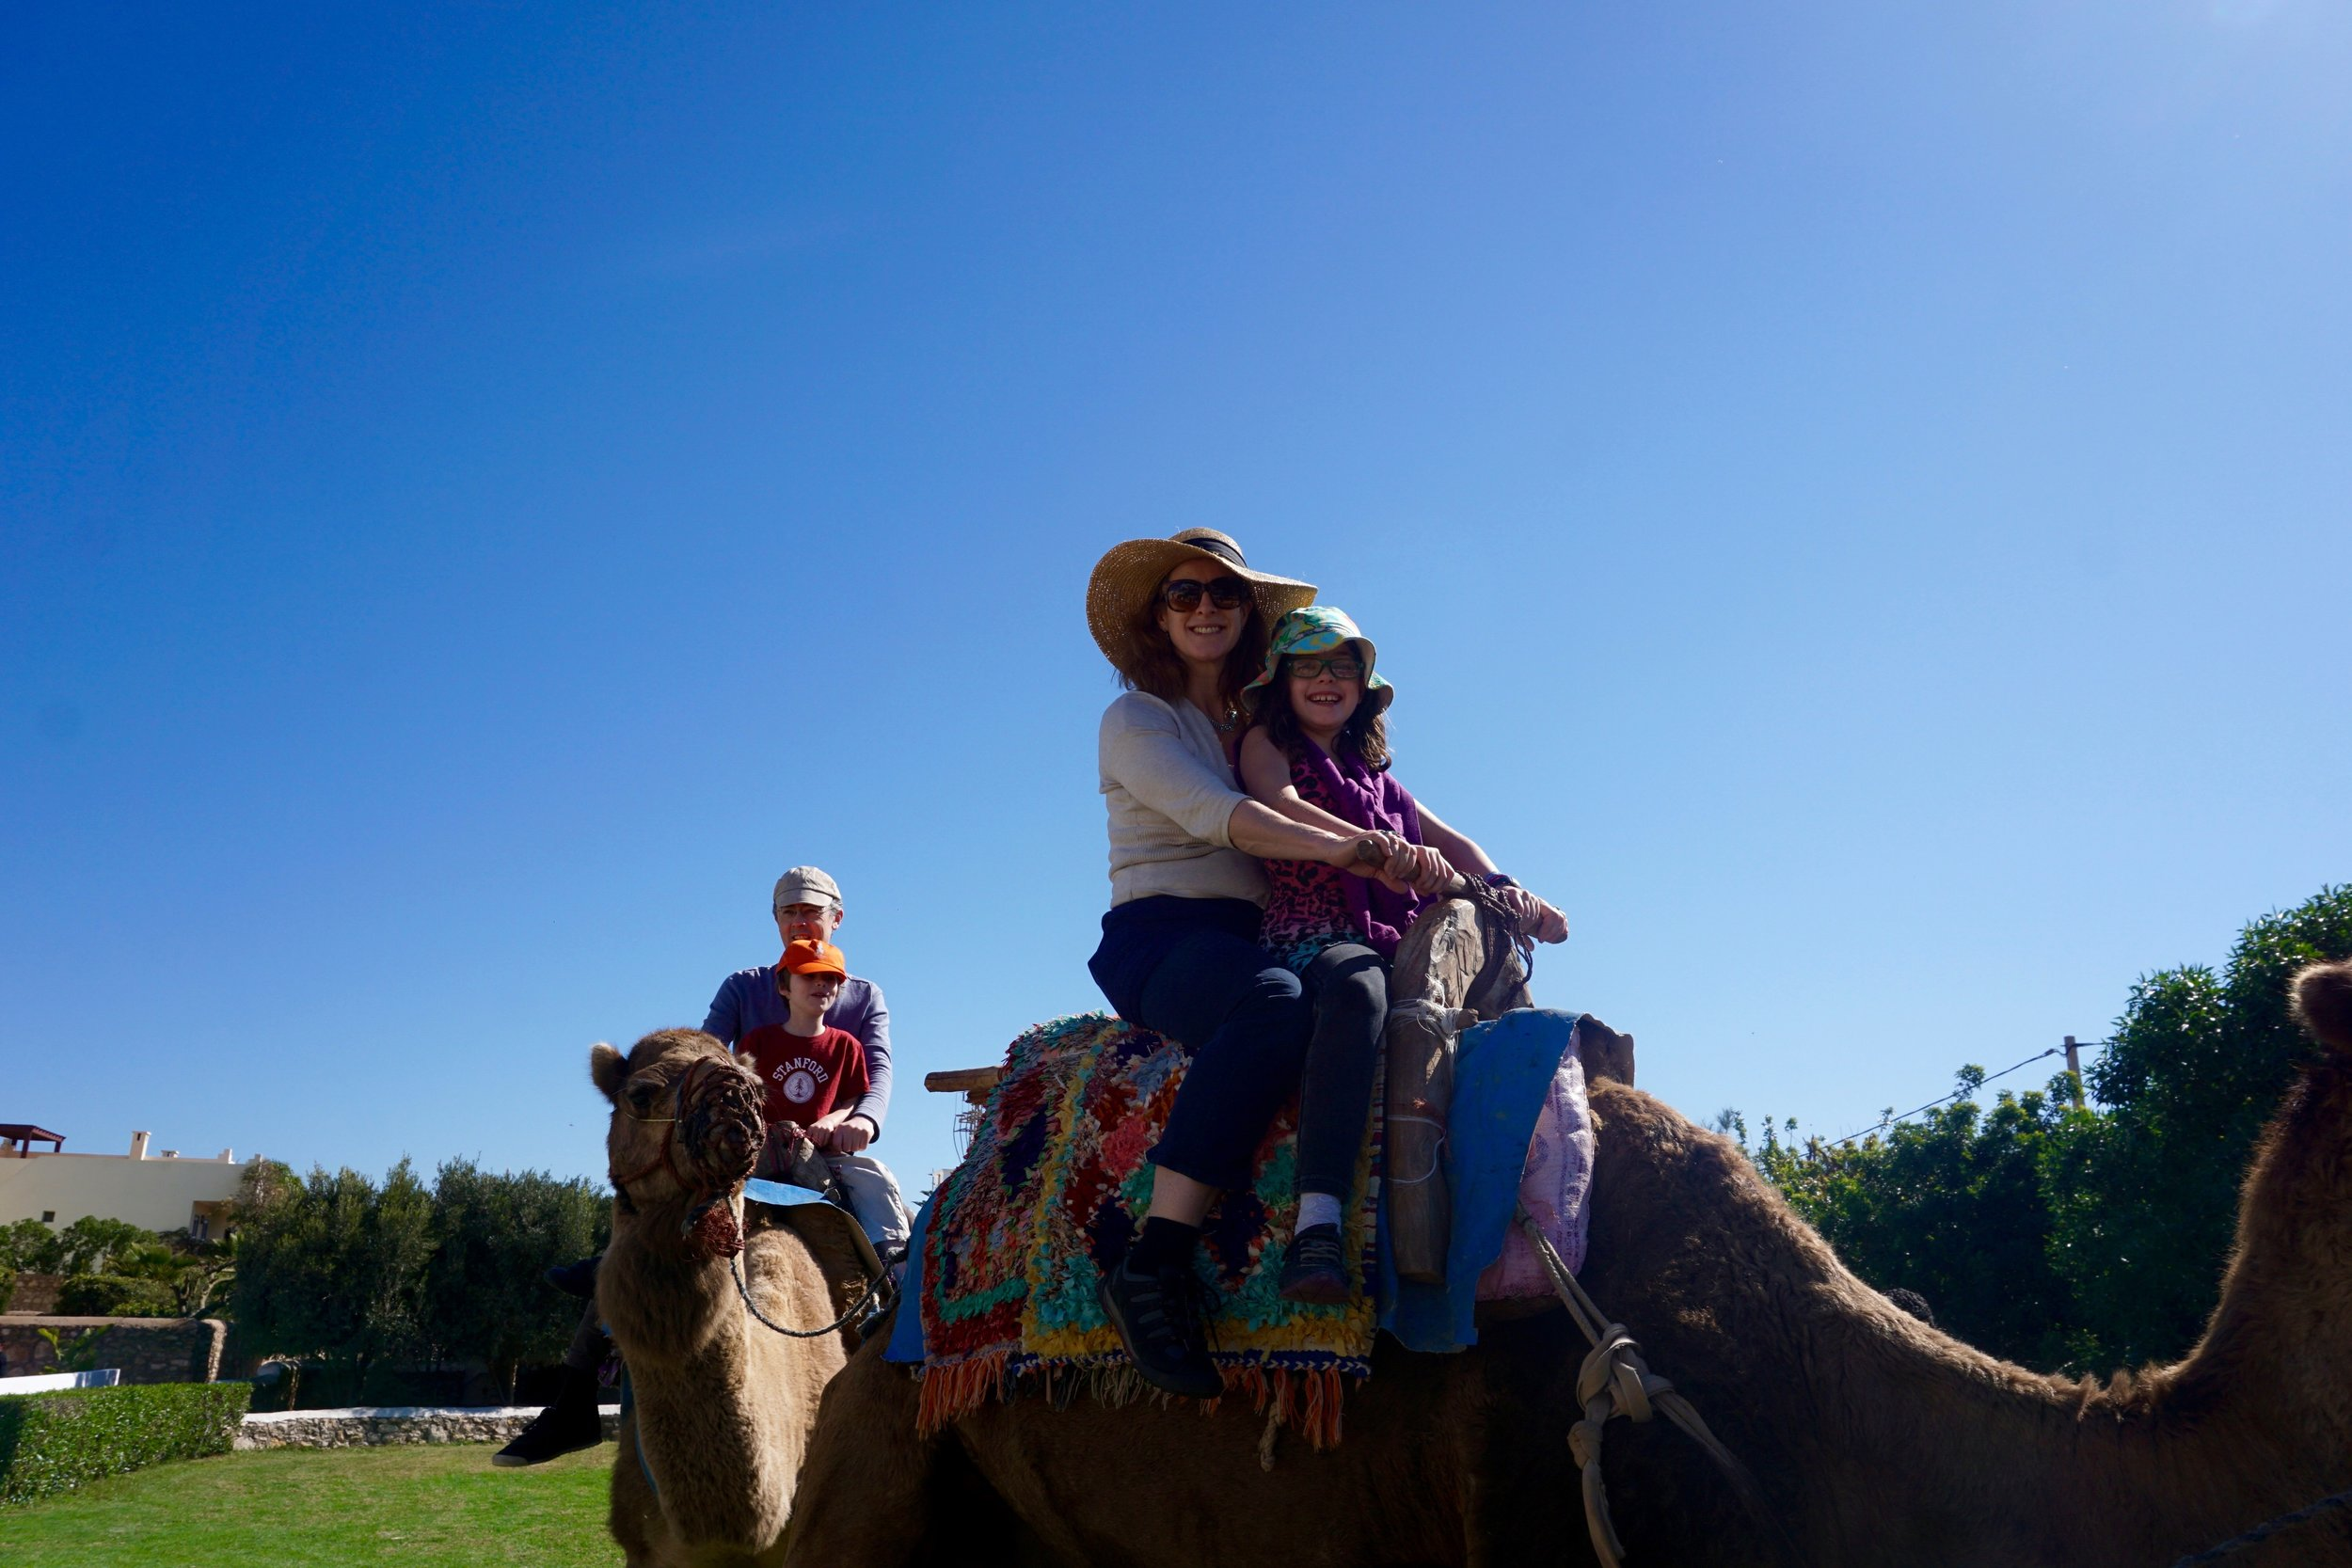 Nadine Meller and family CamelRide Morocco.jpg